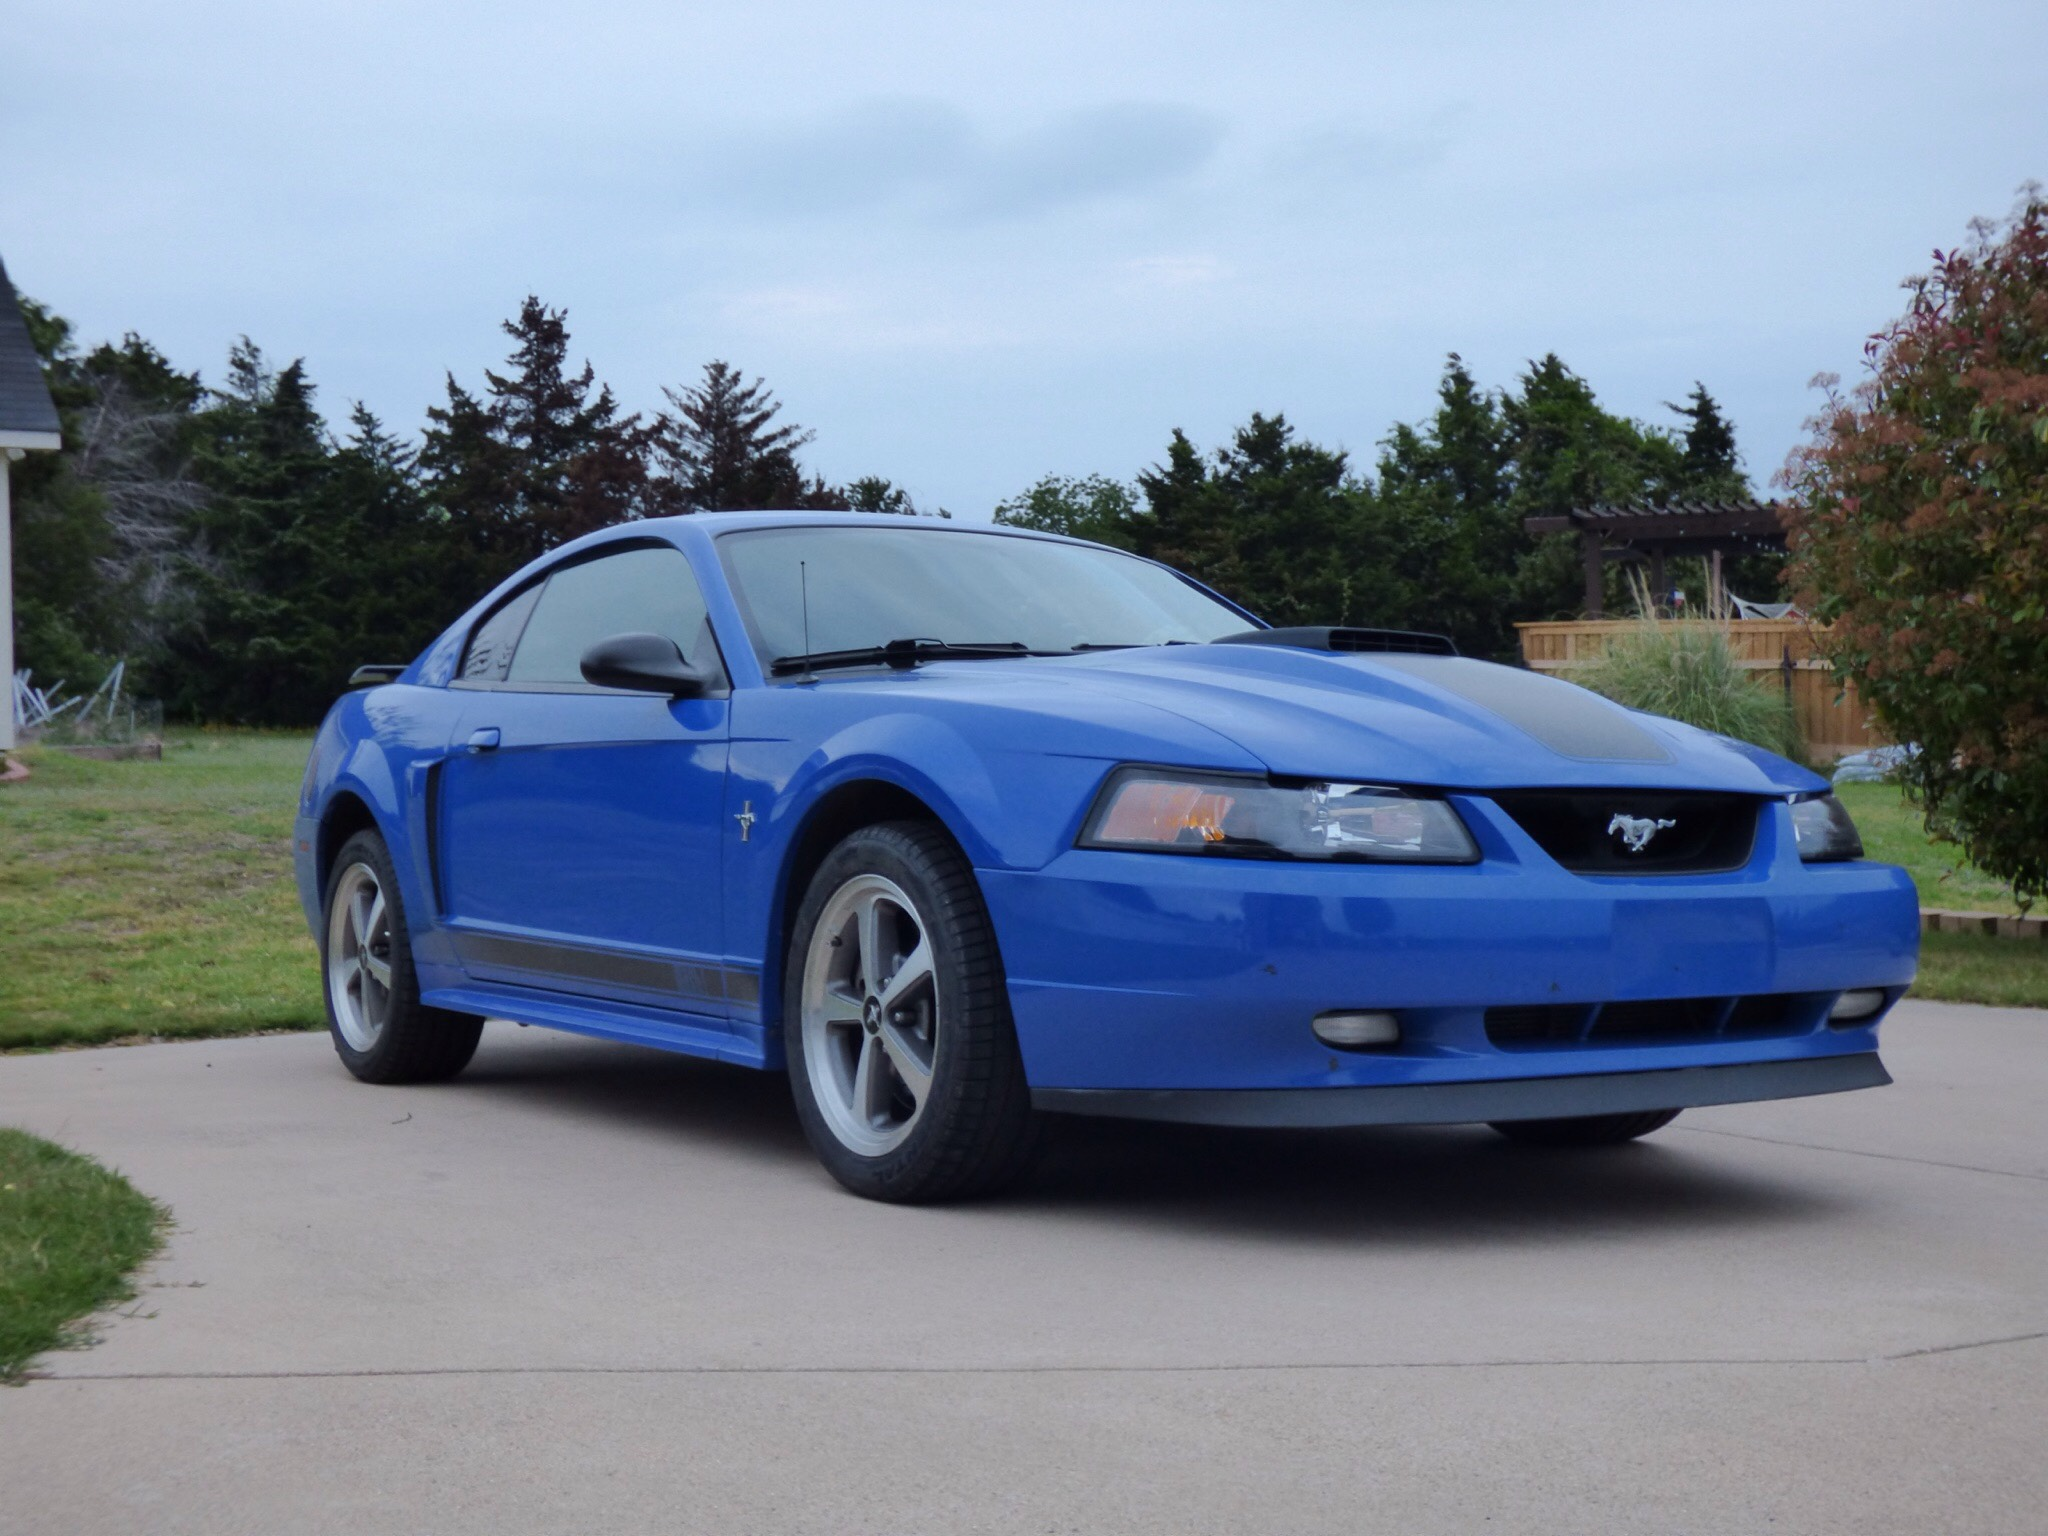 2003 Ford Mustang Mach 1 Azure Blue